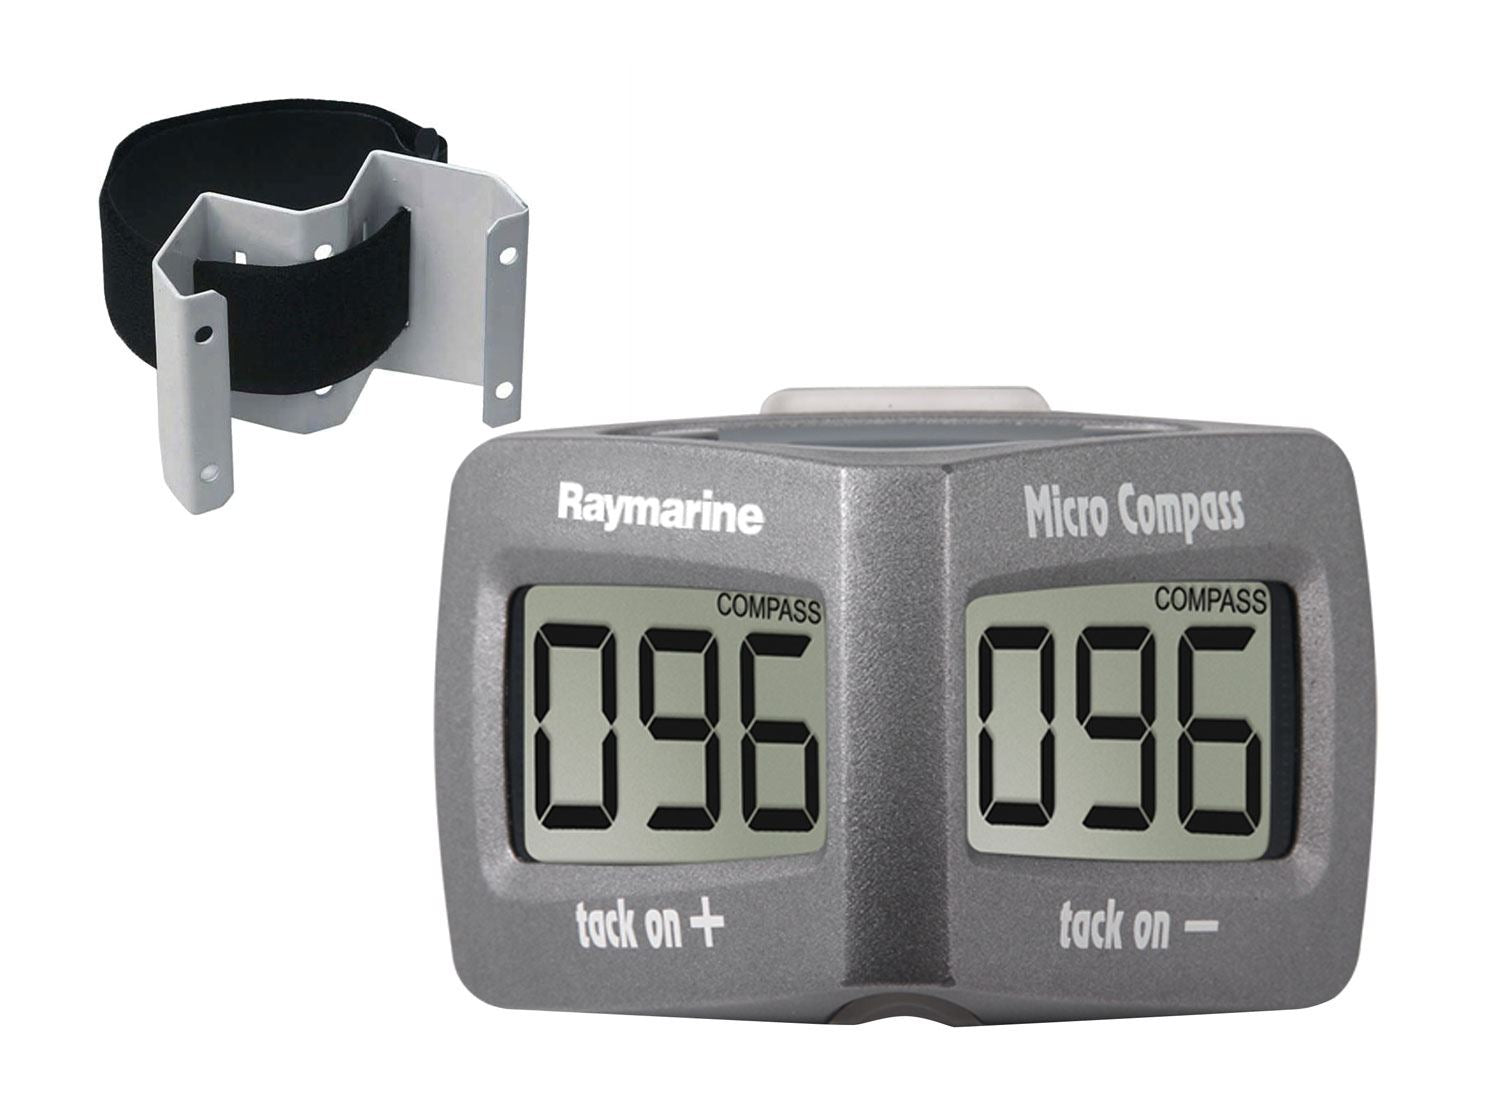 Raymarine T061 Tacktick Micro Compass with Bracket